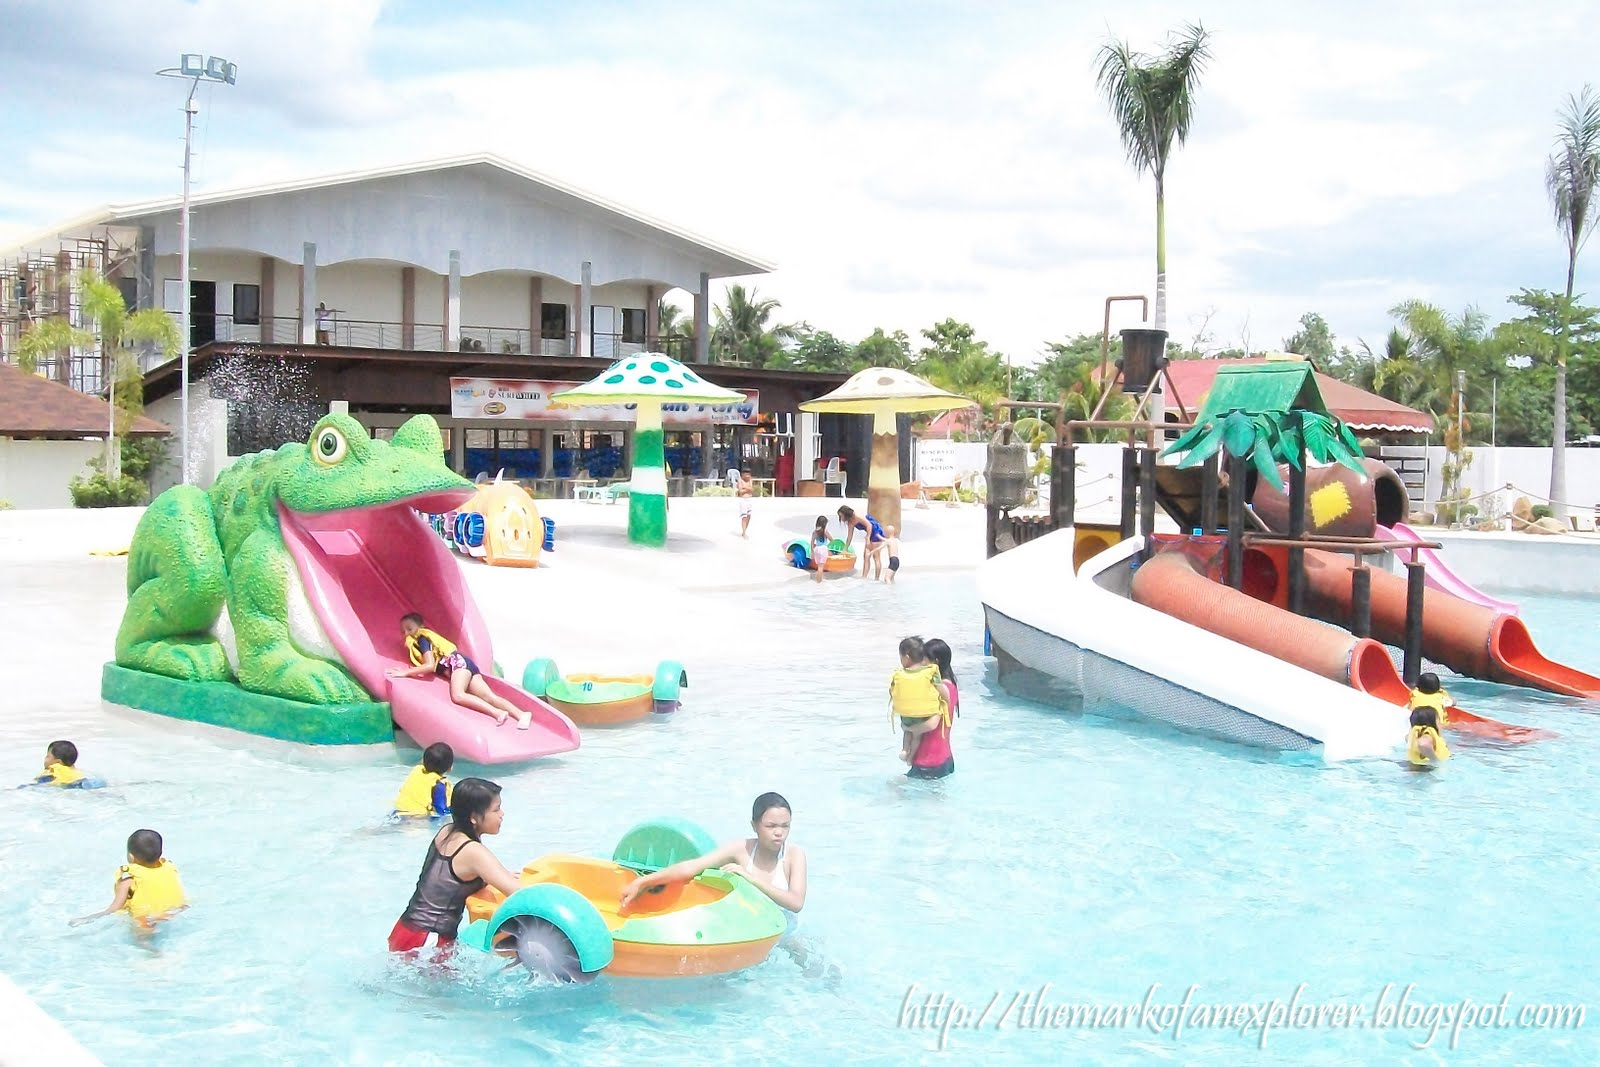 Emar S Hotel Resort Restaurant Wave Pool Davao City The Durian Post By Roger